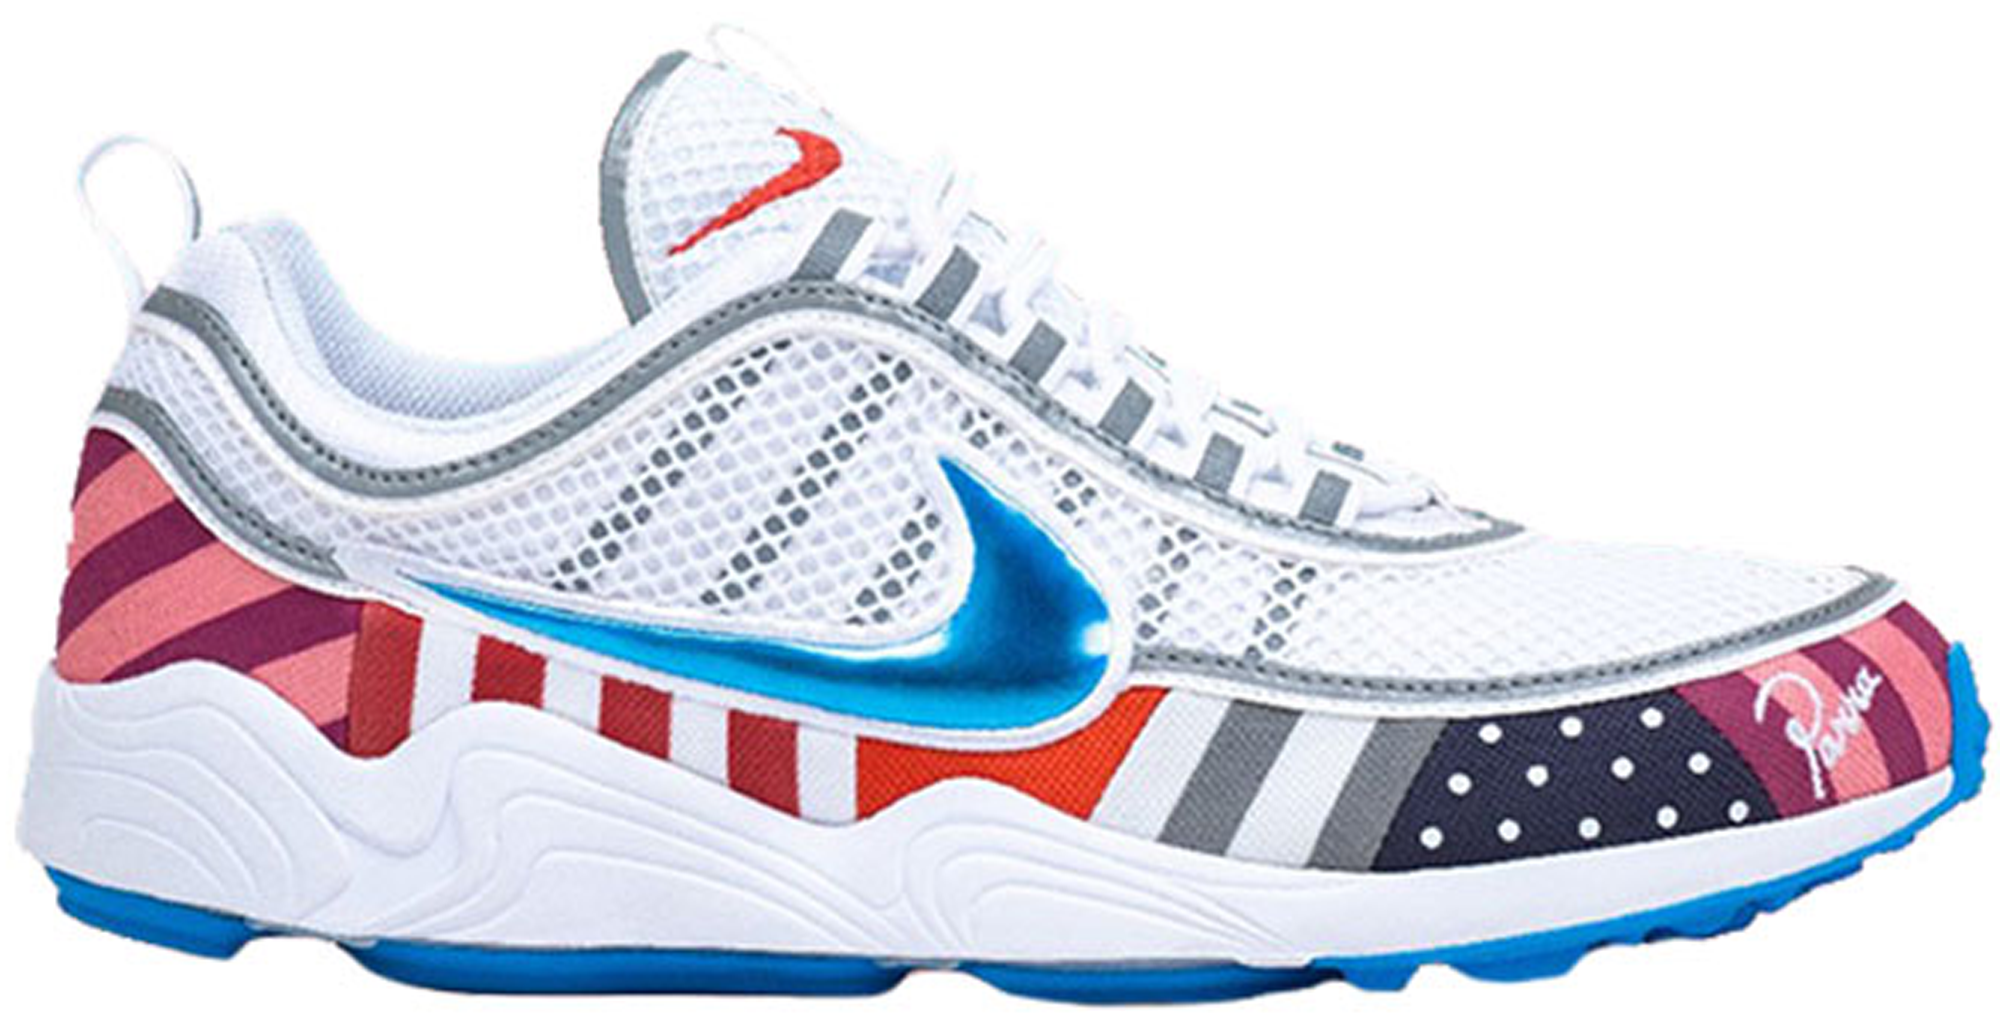 timeless design 39f1a 4e078 Nike Air Zoom Spiridon Parra